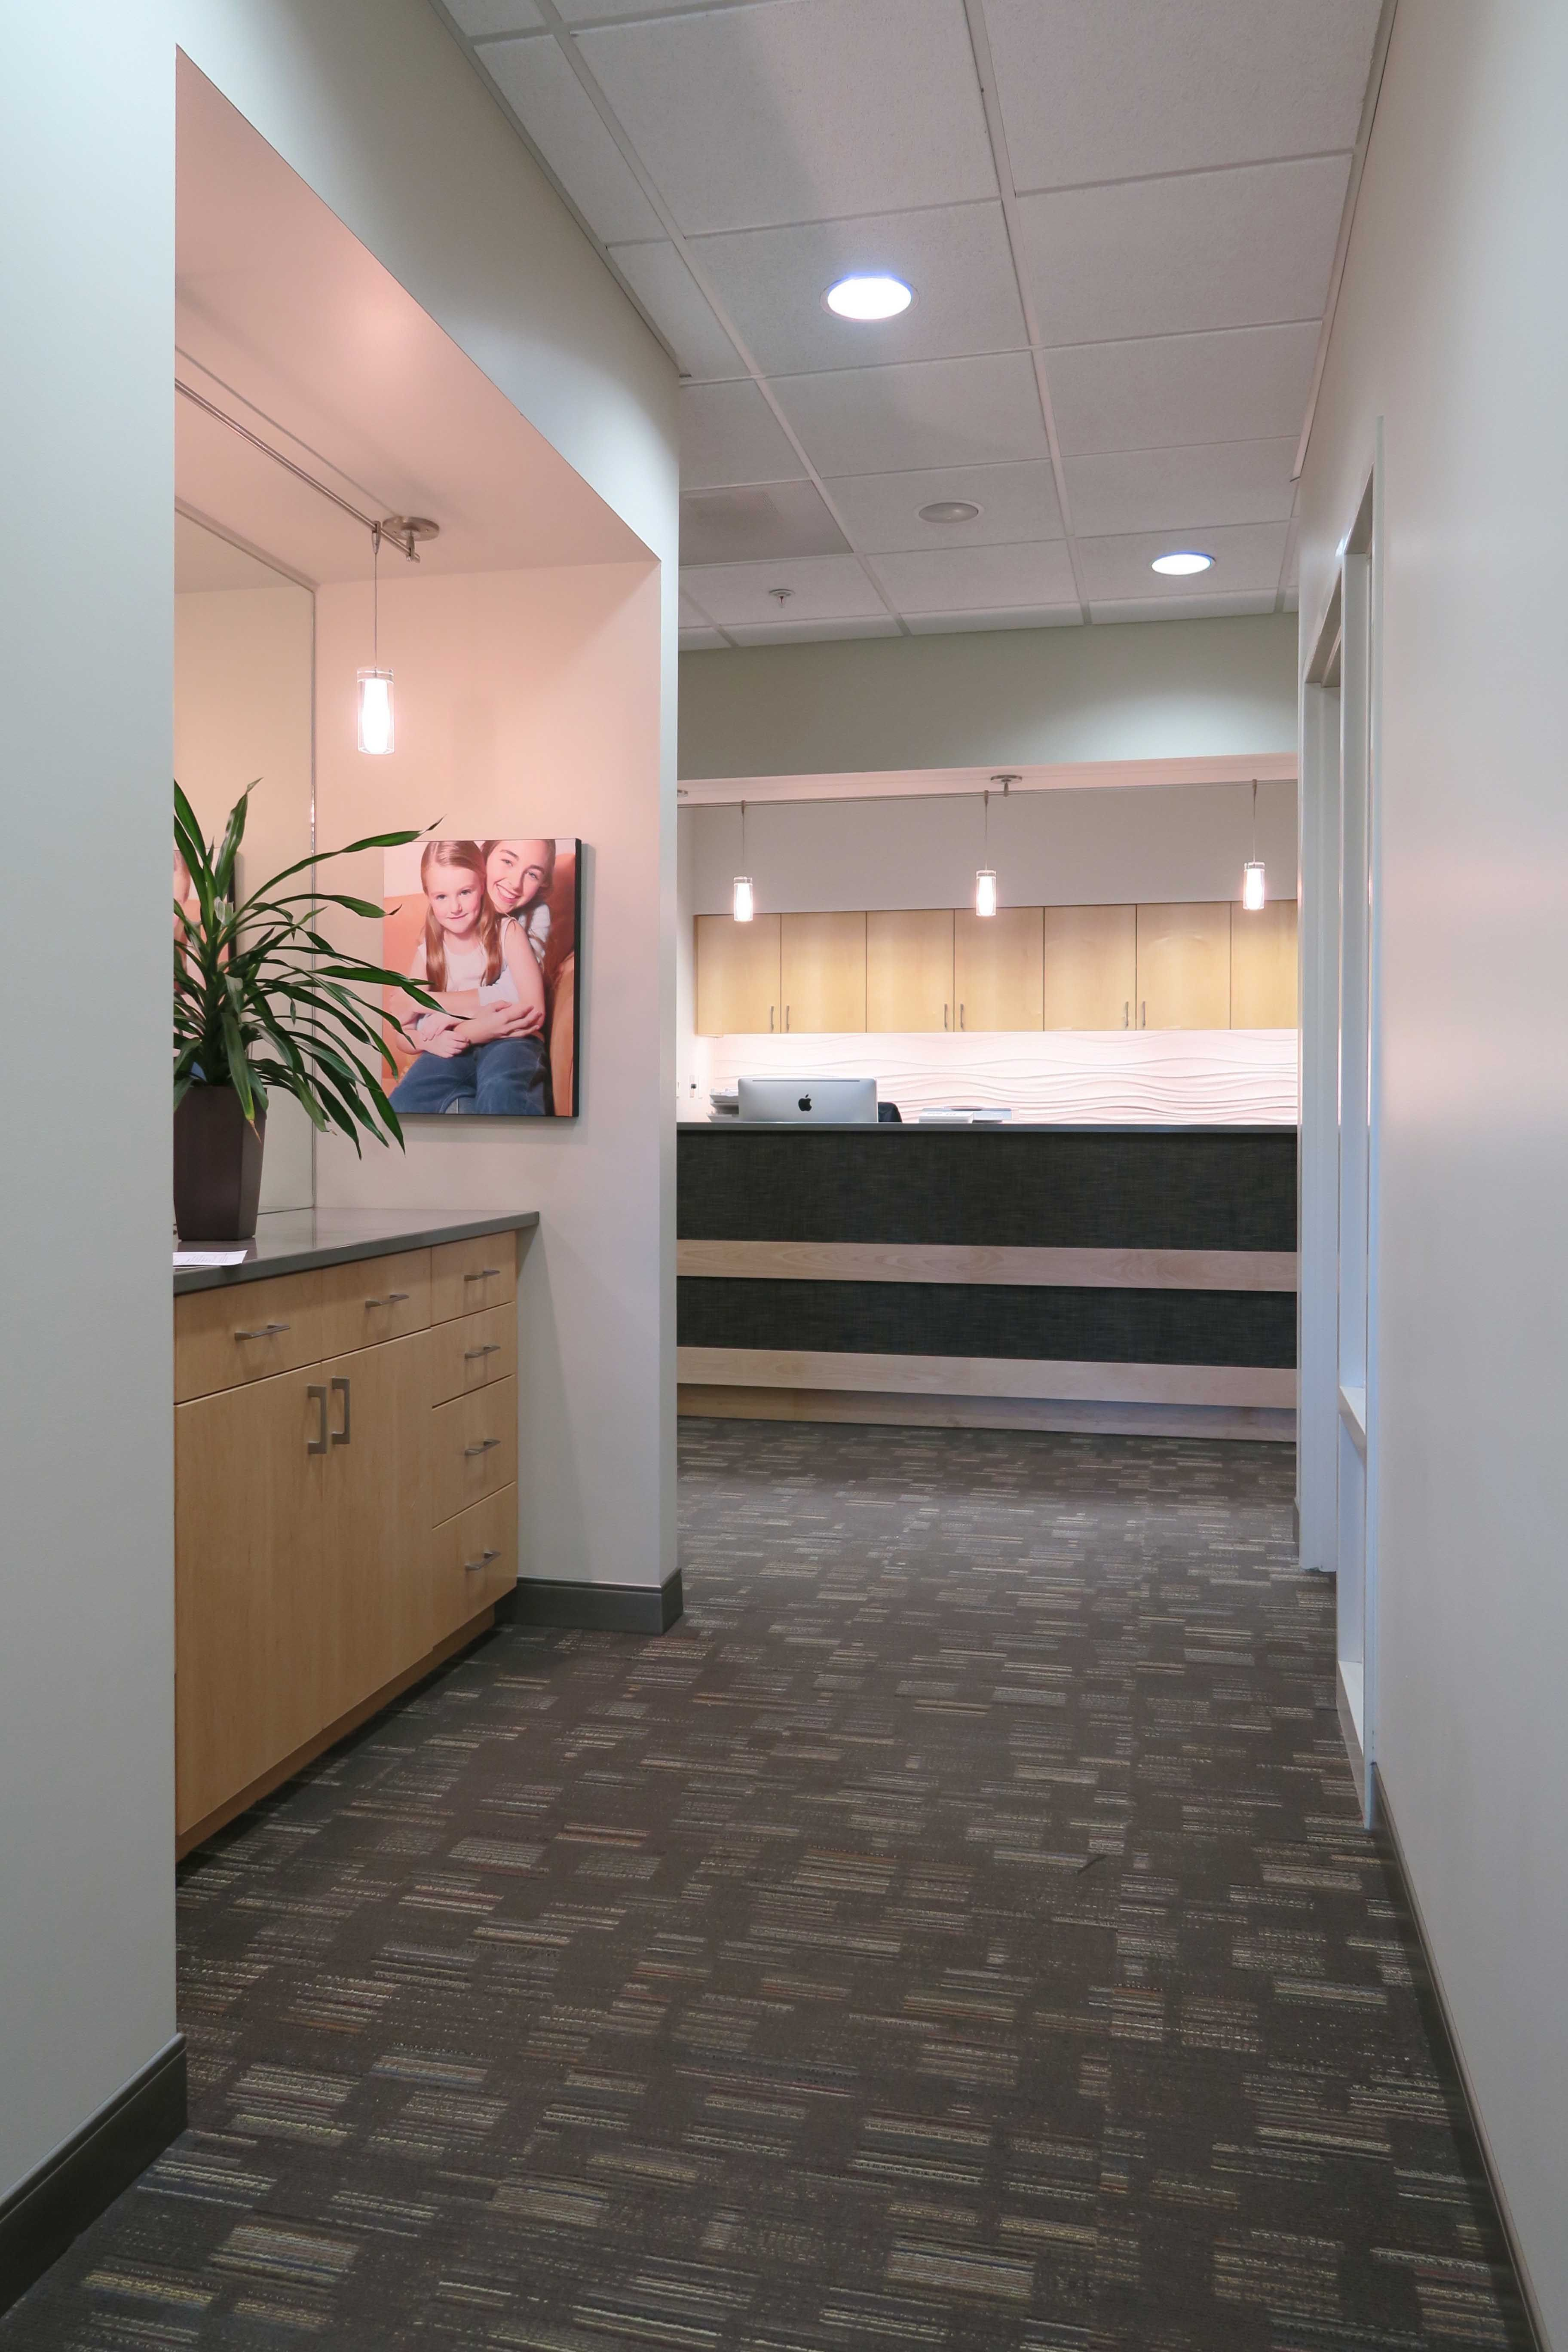 Dental Office Design Competition (With images) | Dental ...